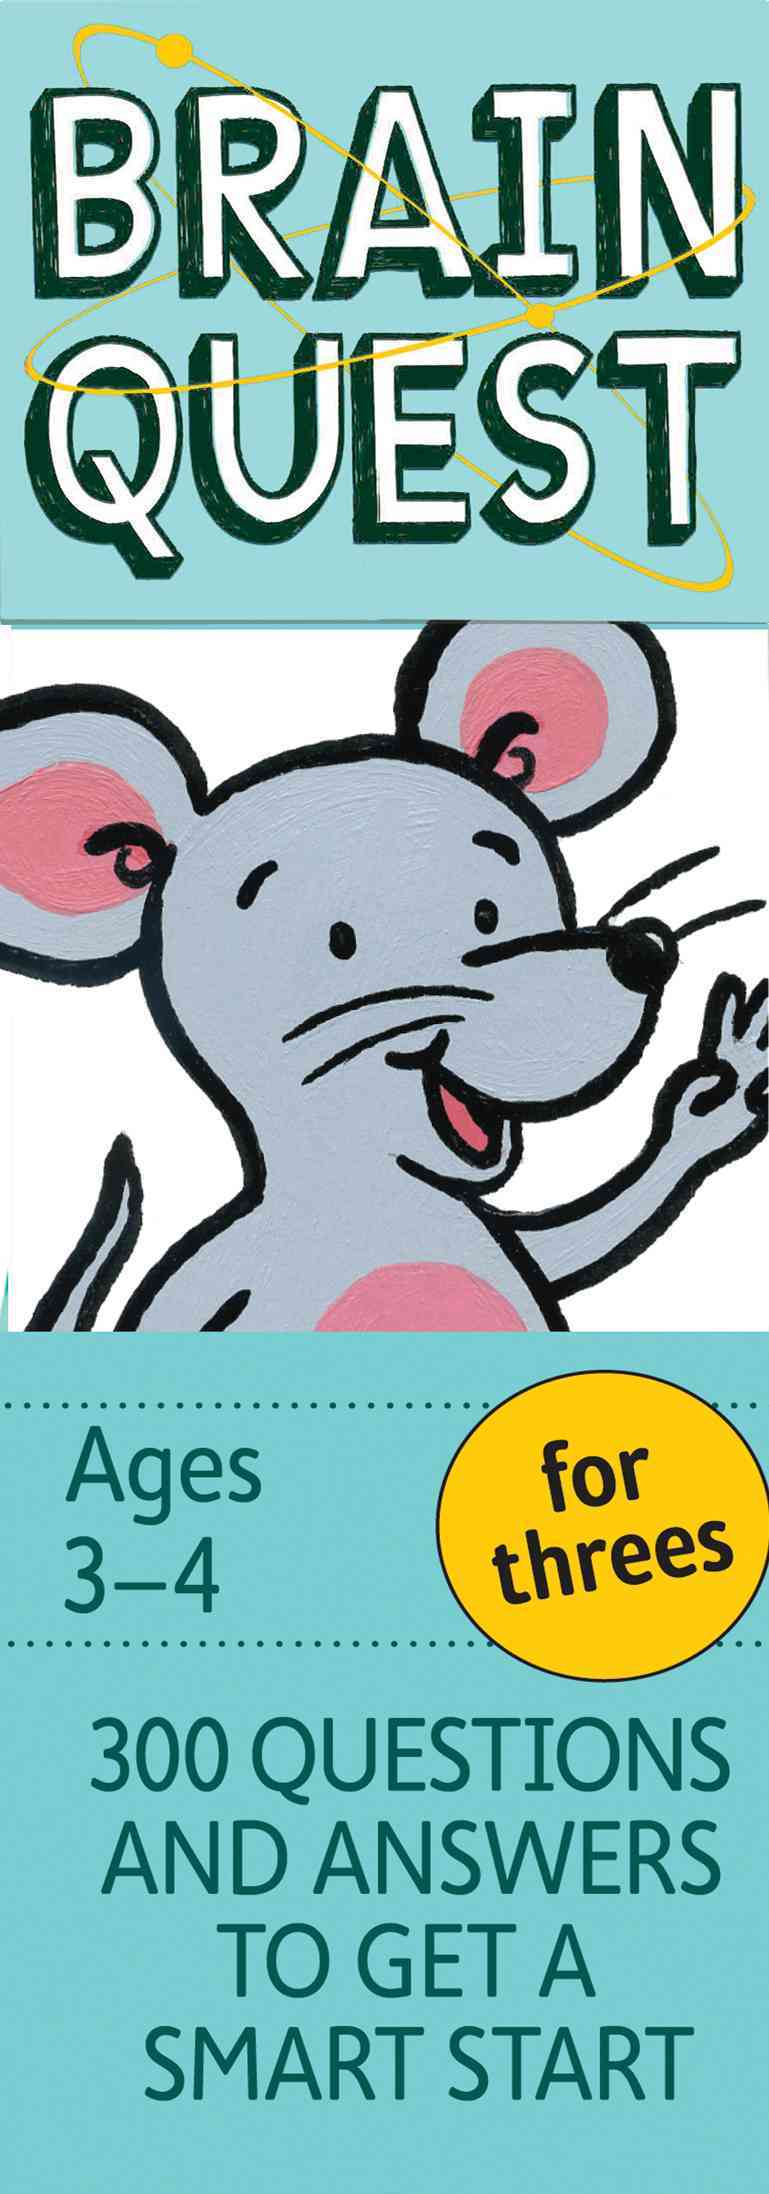 Brain Quest for Threes By Feder, Chris Welles/ Bishay, Susan